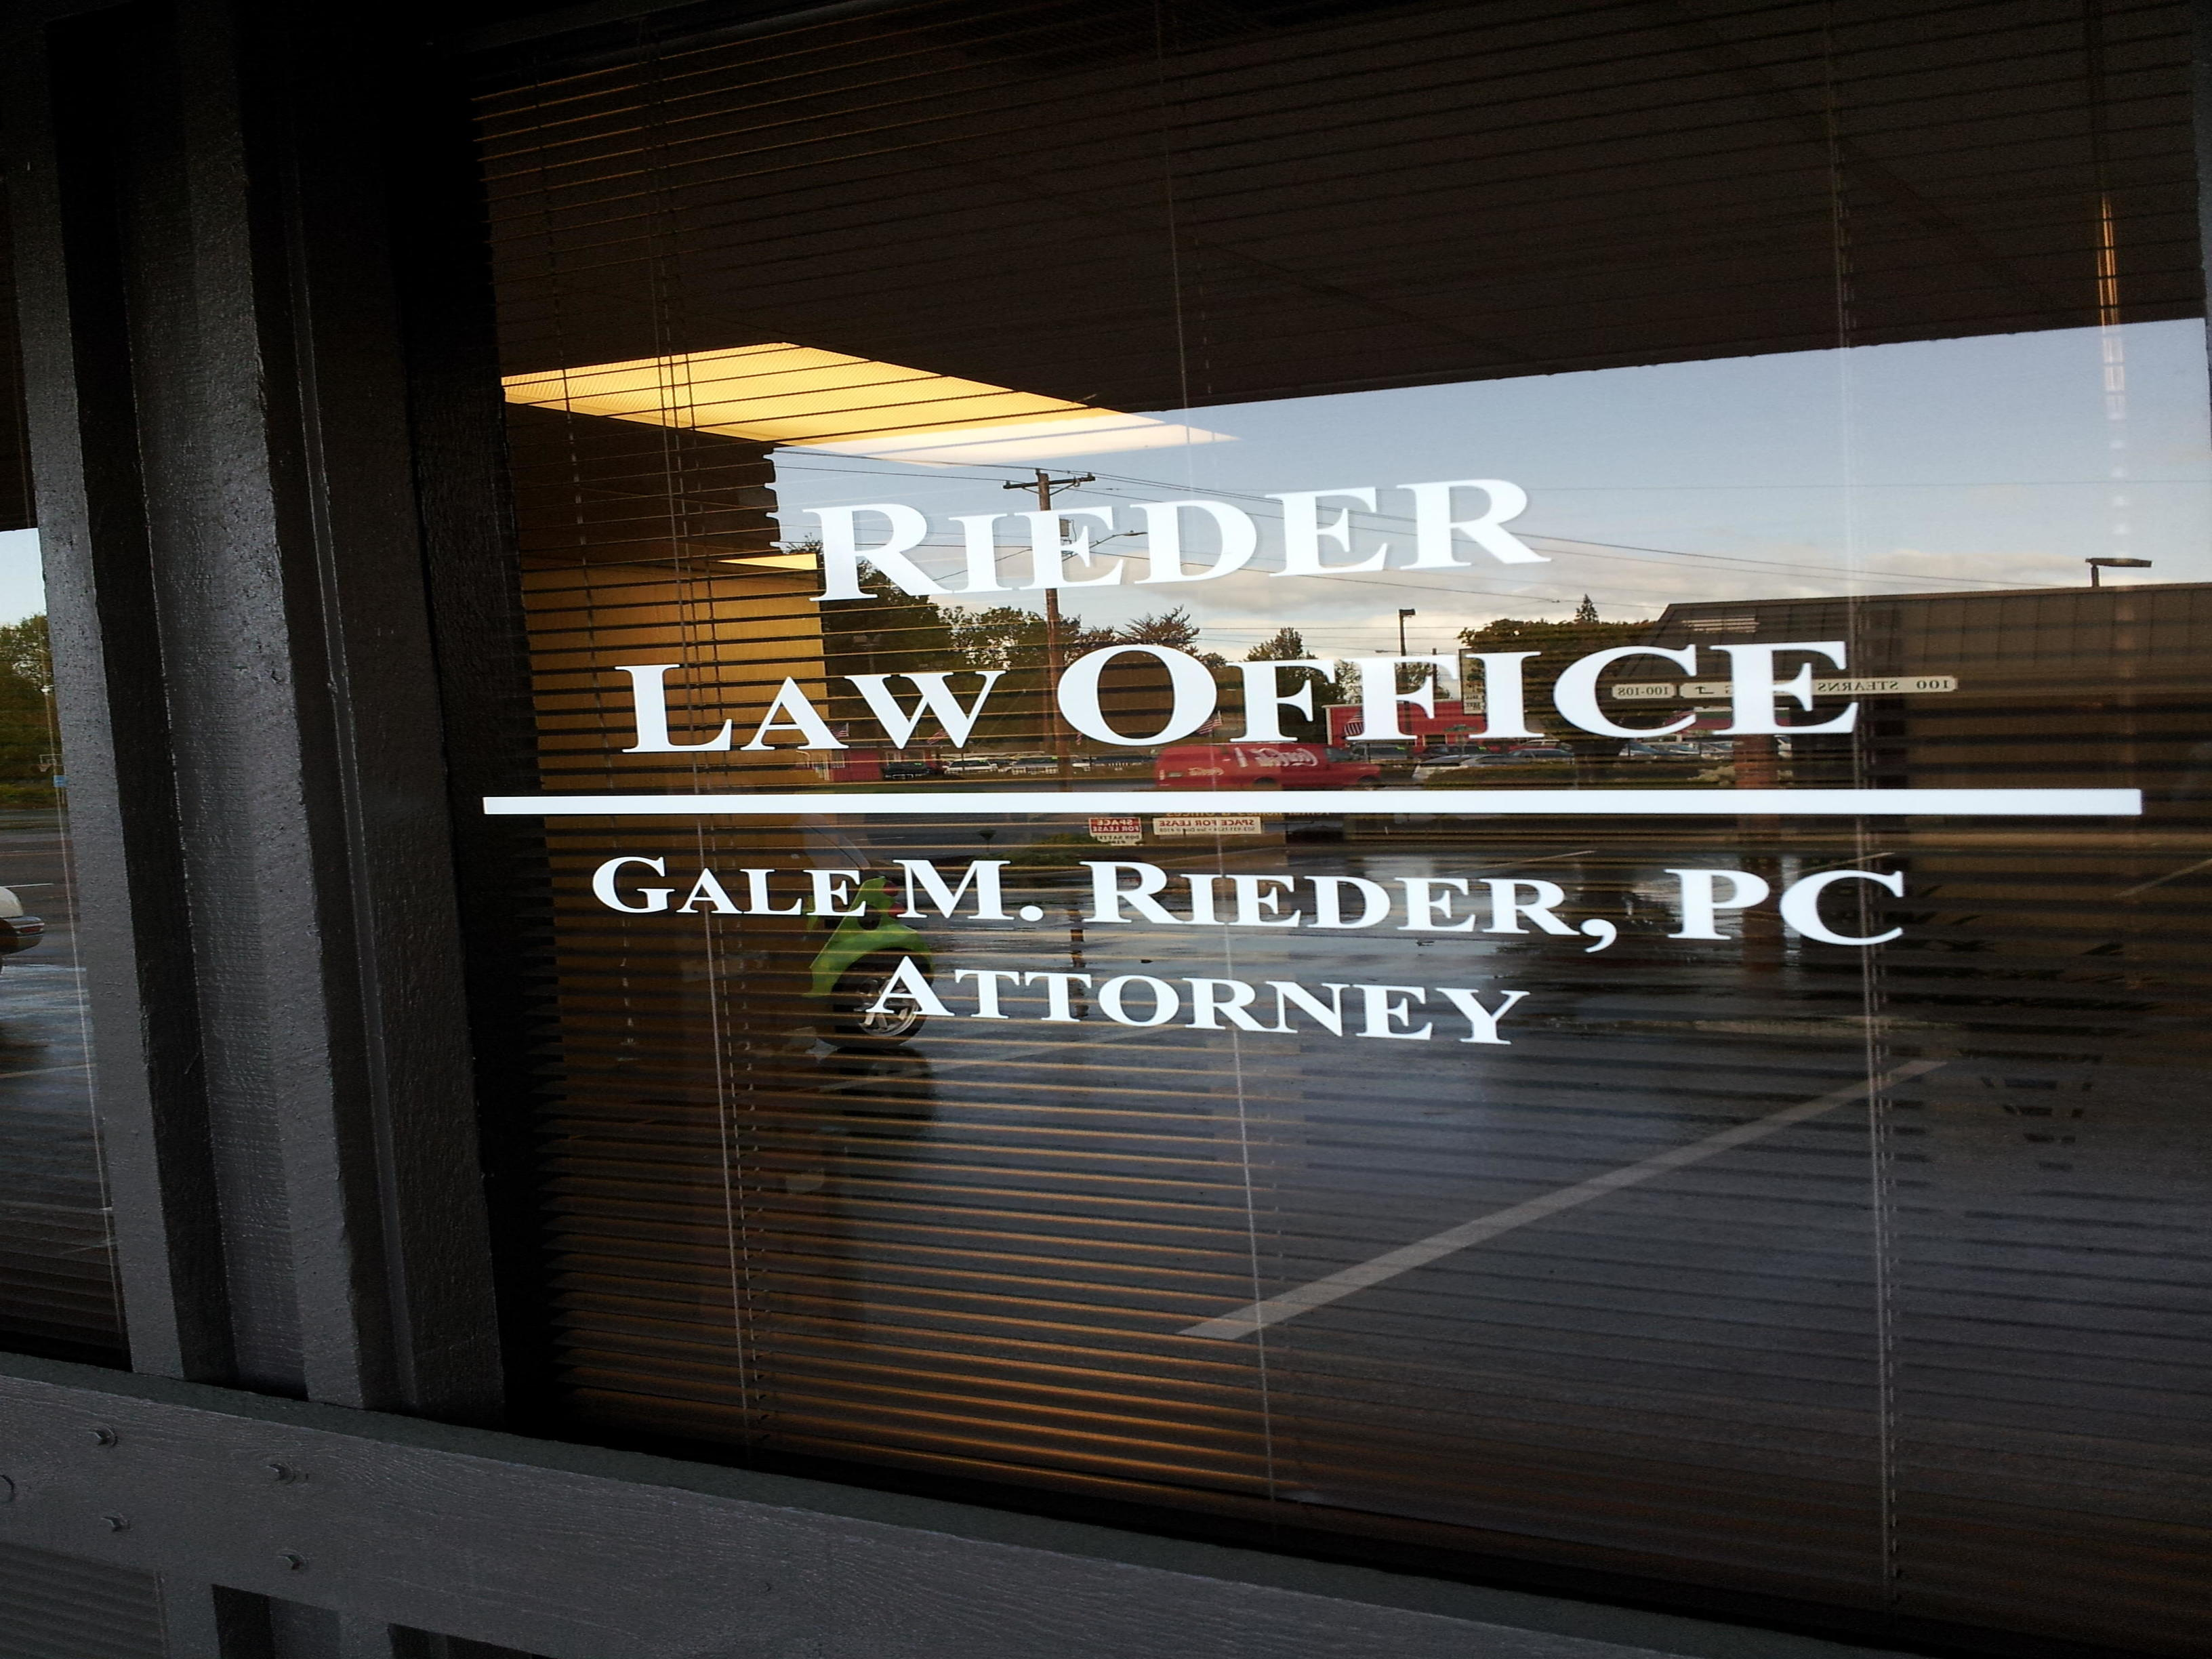 Rieder Law Office, Gale M. Rieder, PC, Attorney - ad image